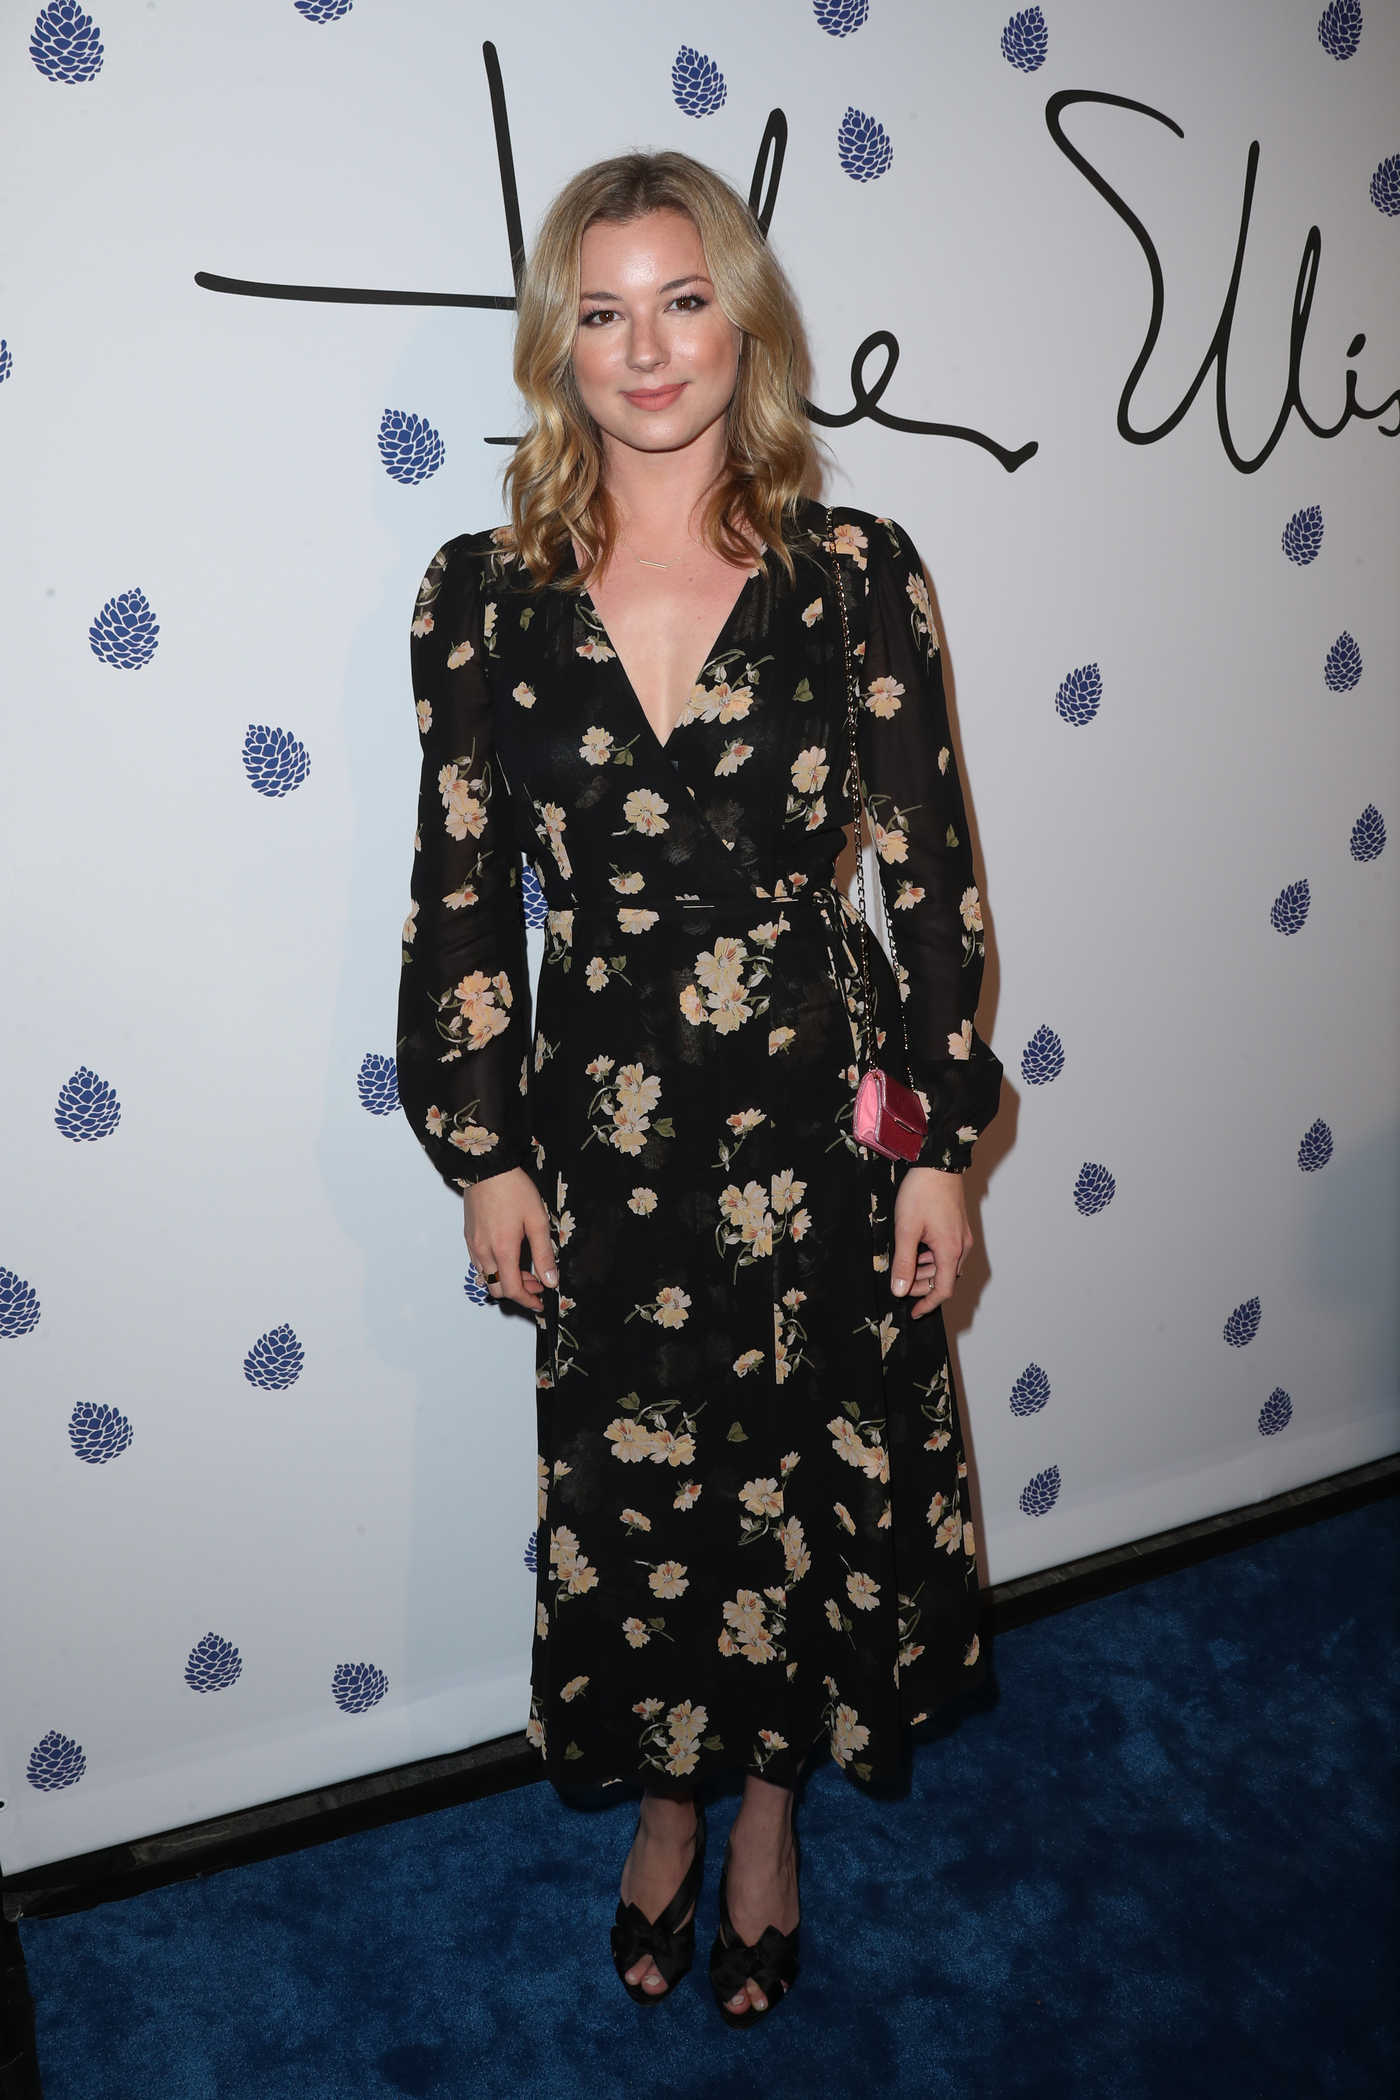 Emily VanCamp at the Tyler Ellis Celebrates 5th Anniversary at Chateau Marmont in West Hollywood 01/31/2017